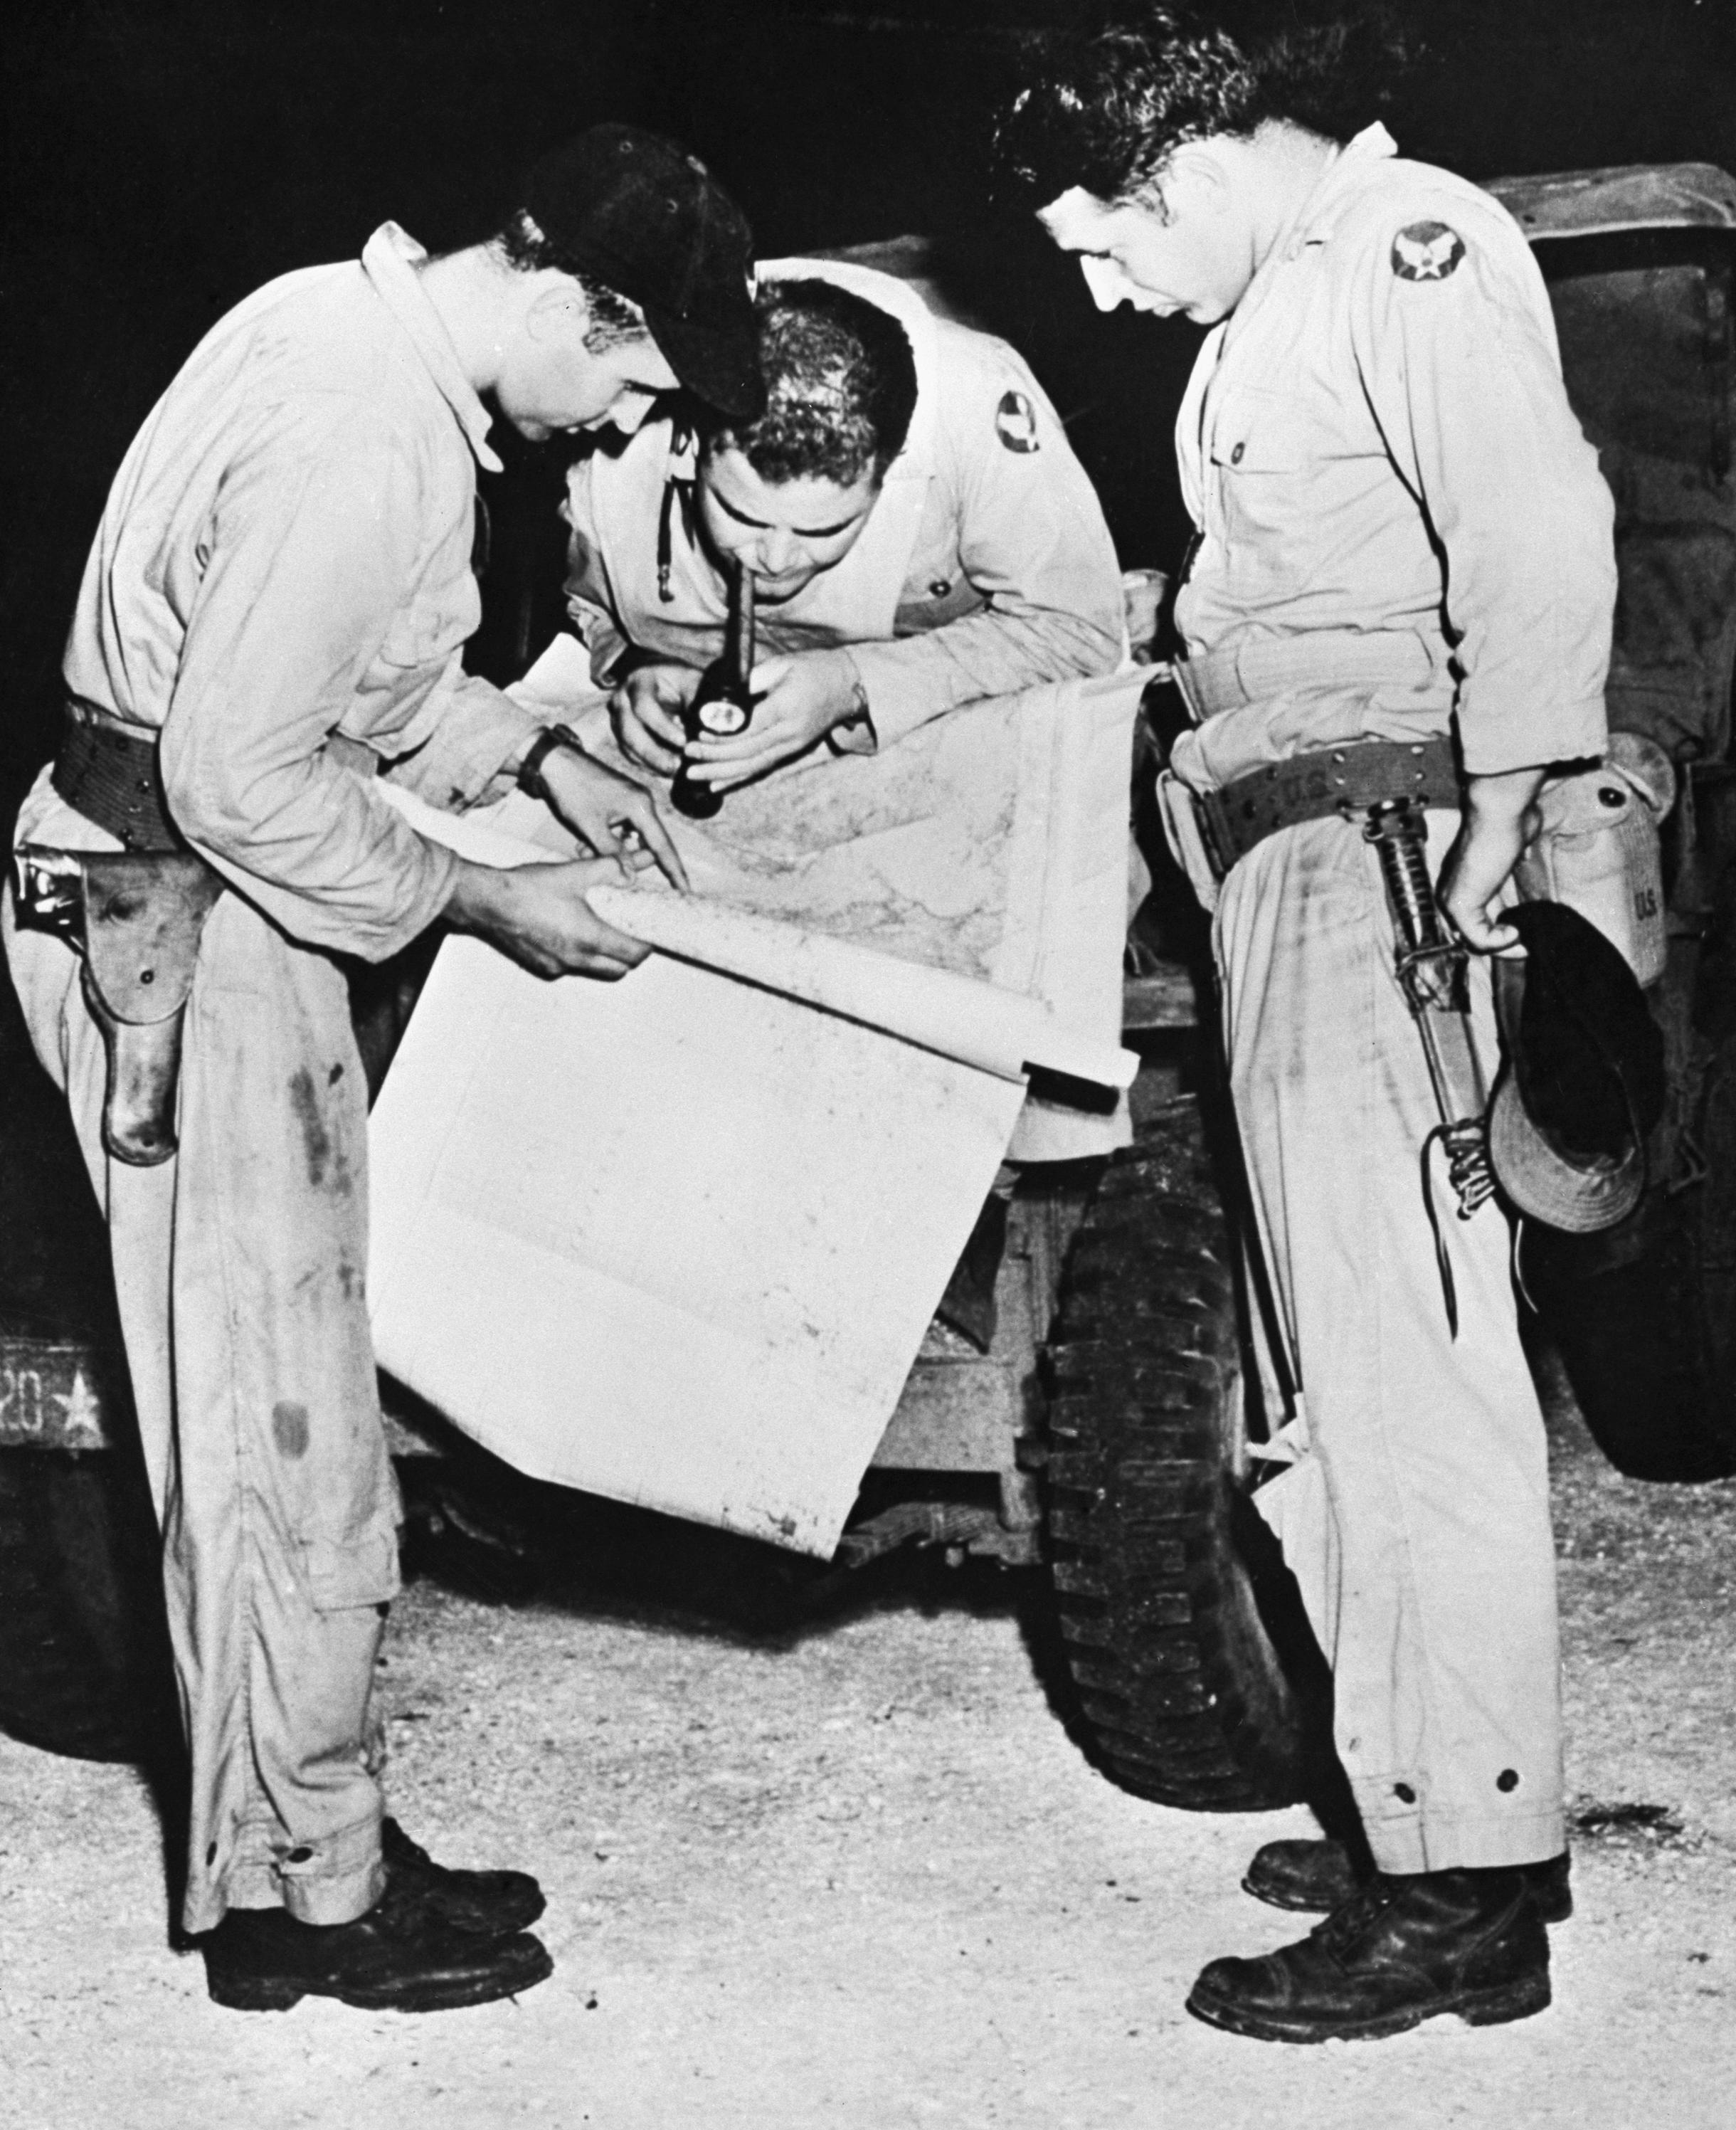 """<p>Men who helped drop the second war-stopping atomic bomb on Nagasaki, Japan, study a map of their objective shortly before the take off of the B-29 """"77"""" which dropped the bomb on Aug. 9, 1945. Left to right: Capt. Theo J. Van Kirk, navigator, who also made flight aboard the 'Enola Gay' when it dropped the first atom bomb on Hiroshima; Major Sweeney, commanding officer of the 393 bomb squadron and pilot. (Photo: Bettmann/Getty Images) </p>"""